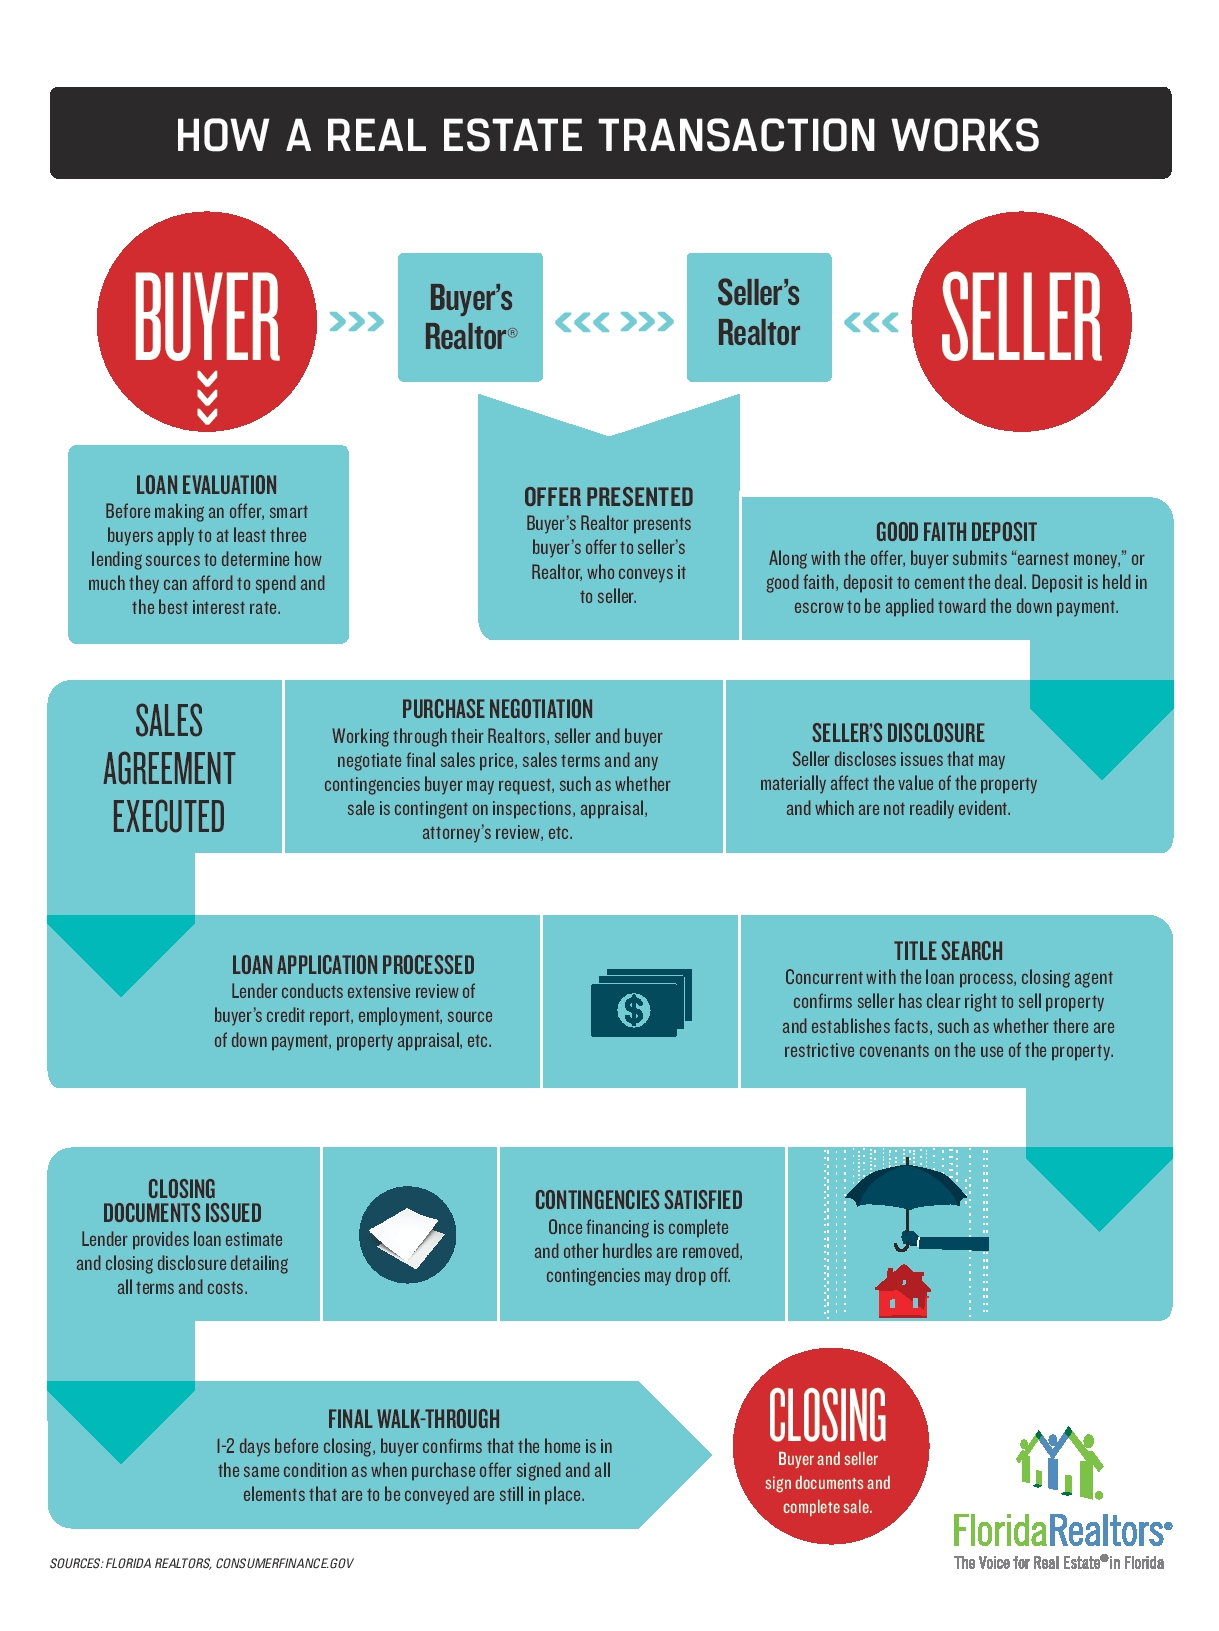 Helpful Info For Home Sellers & Buyers